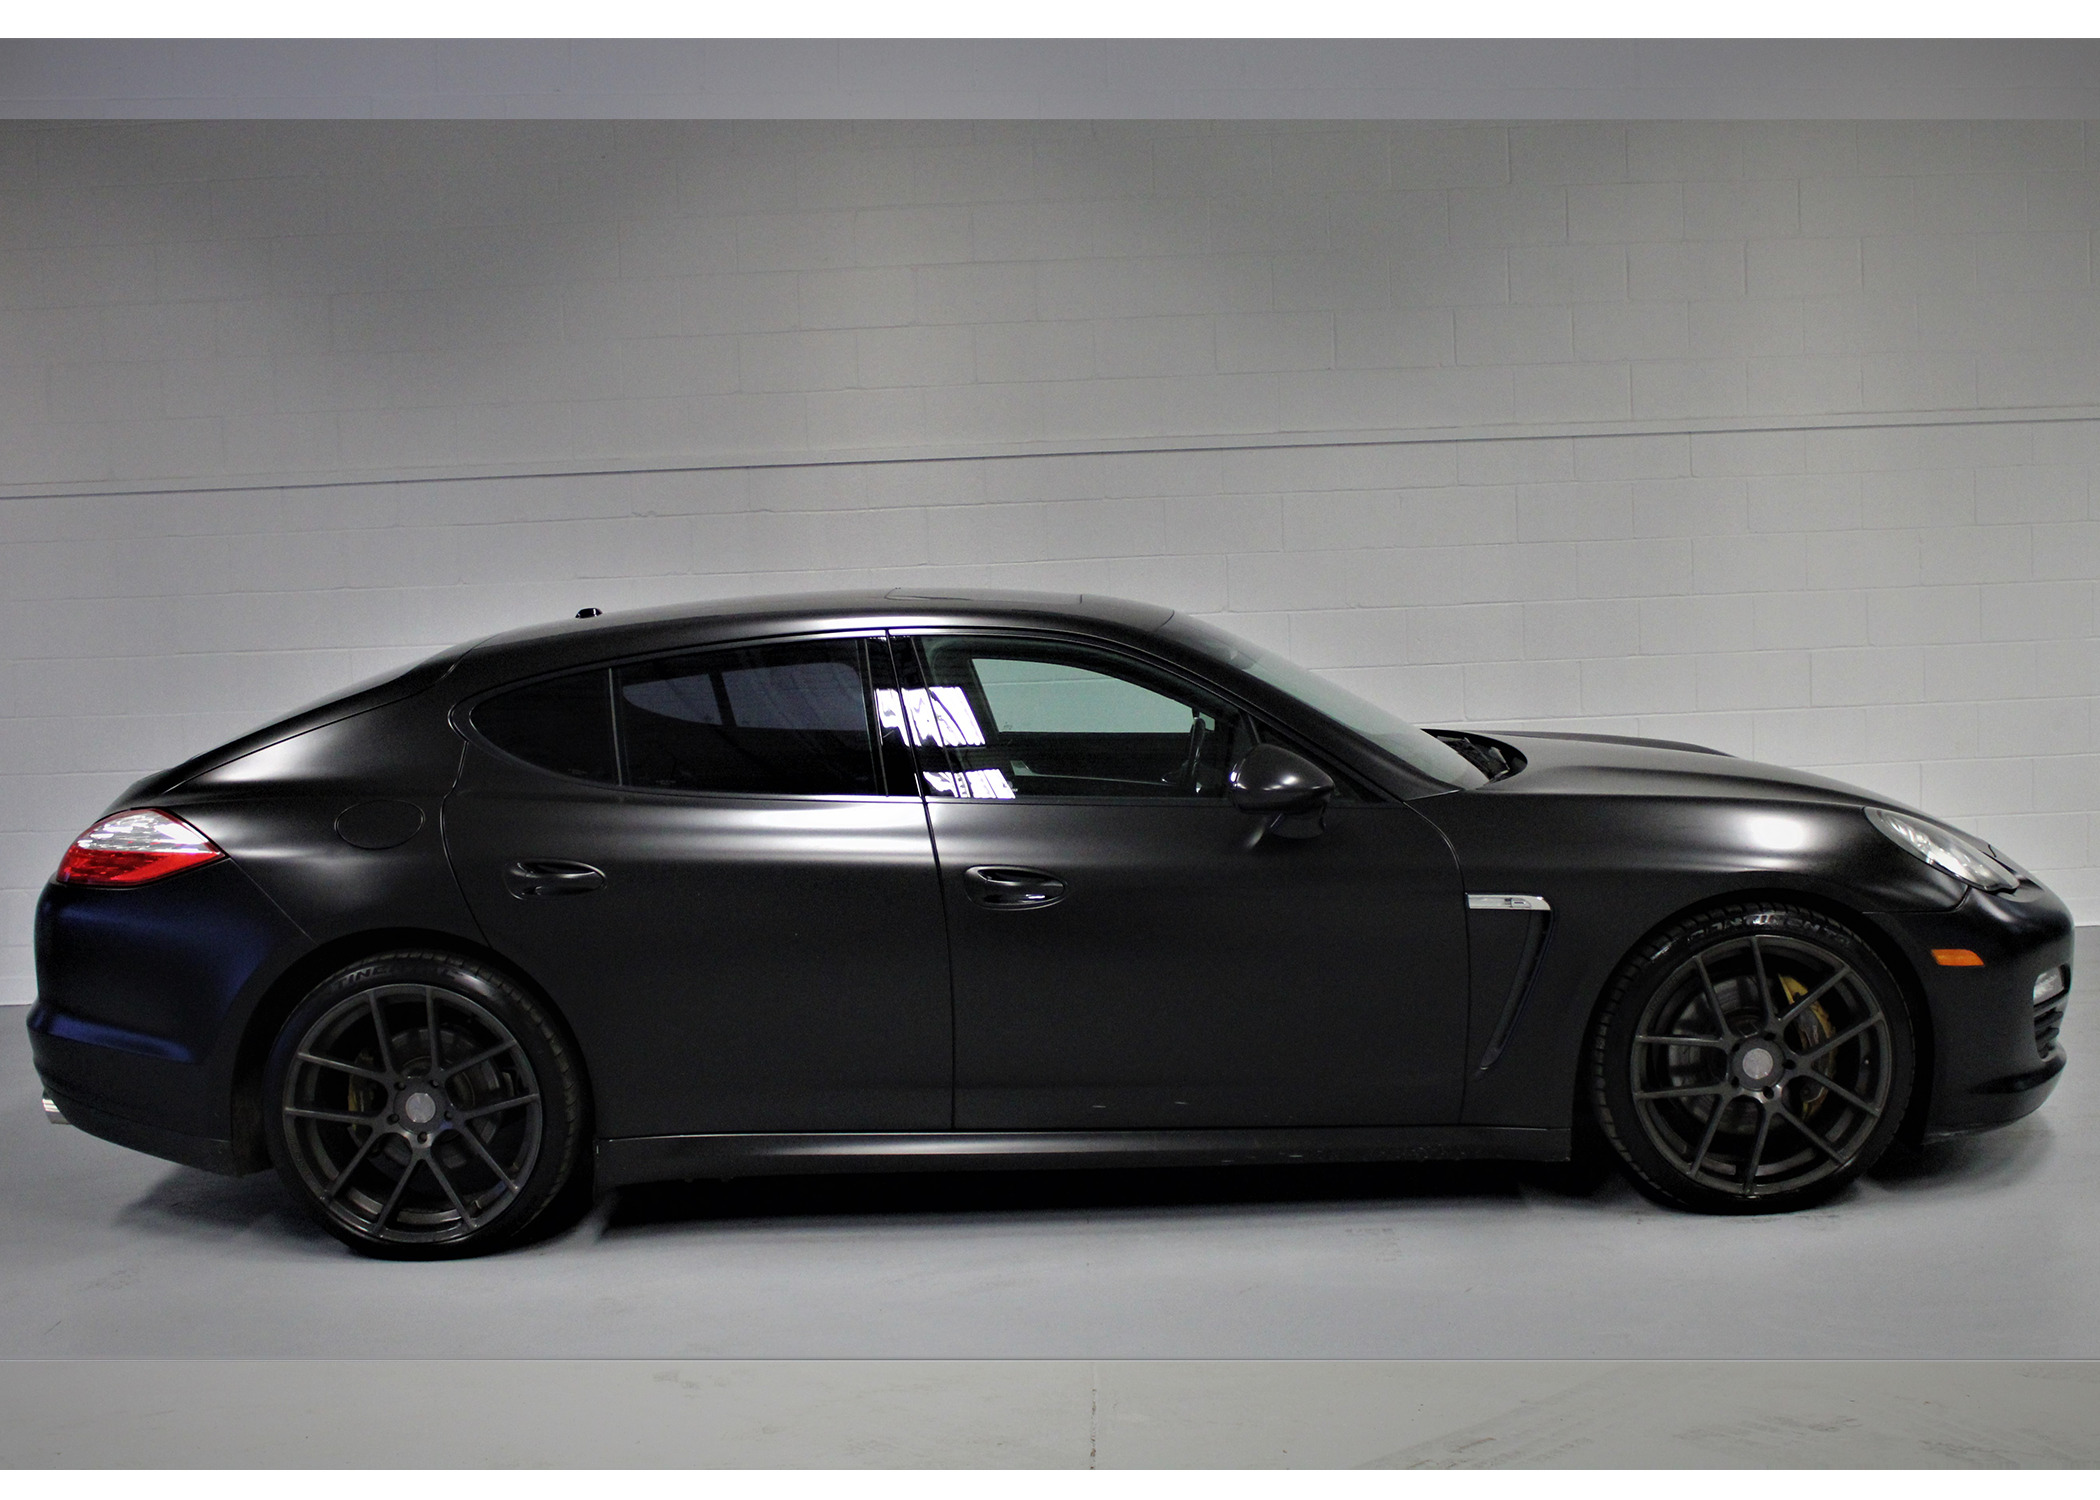 2011 Porsche Panamera Flat Black Wrap 21 Wheels We Approve All Credit Mississauga